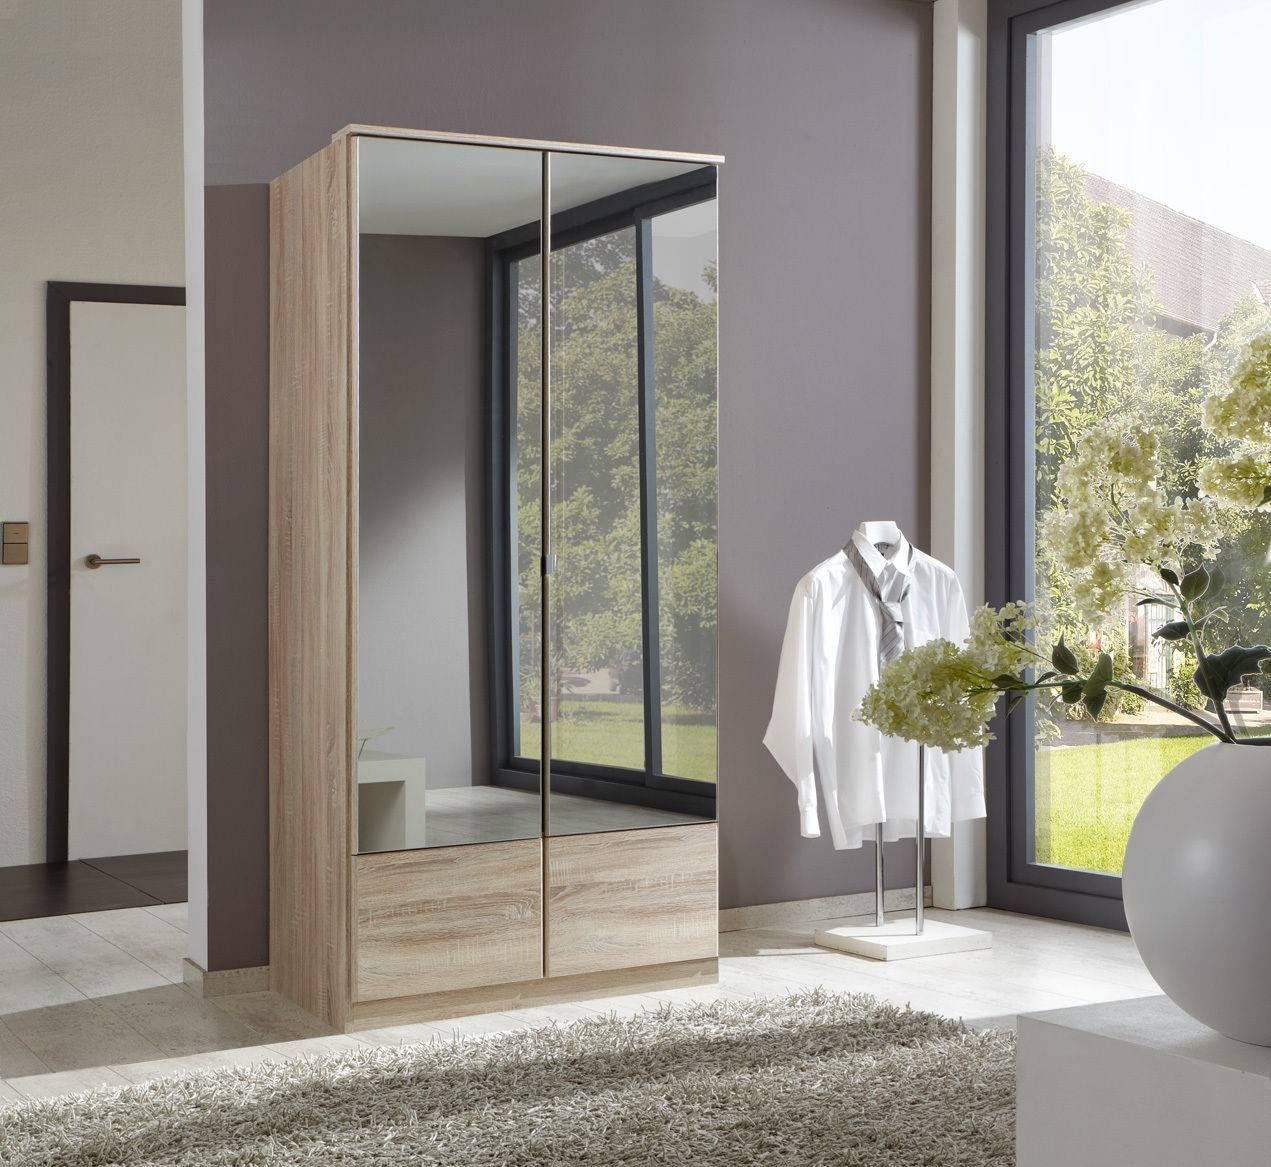 Slumberhaus 'imago' German Made Modern Light Oak & Mirror 2 Door with Oak Mirrored Wardrobes (Image 14 of 15)